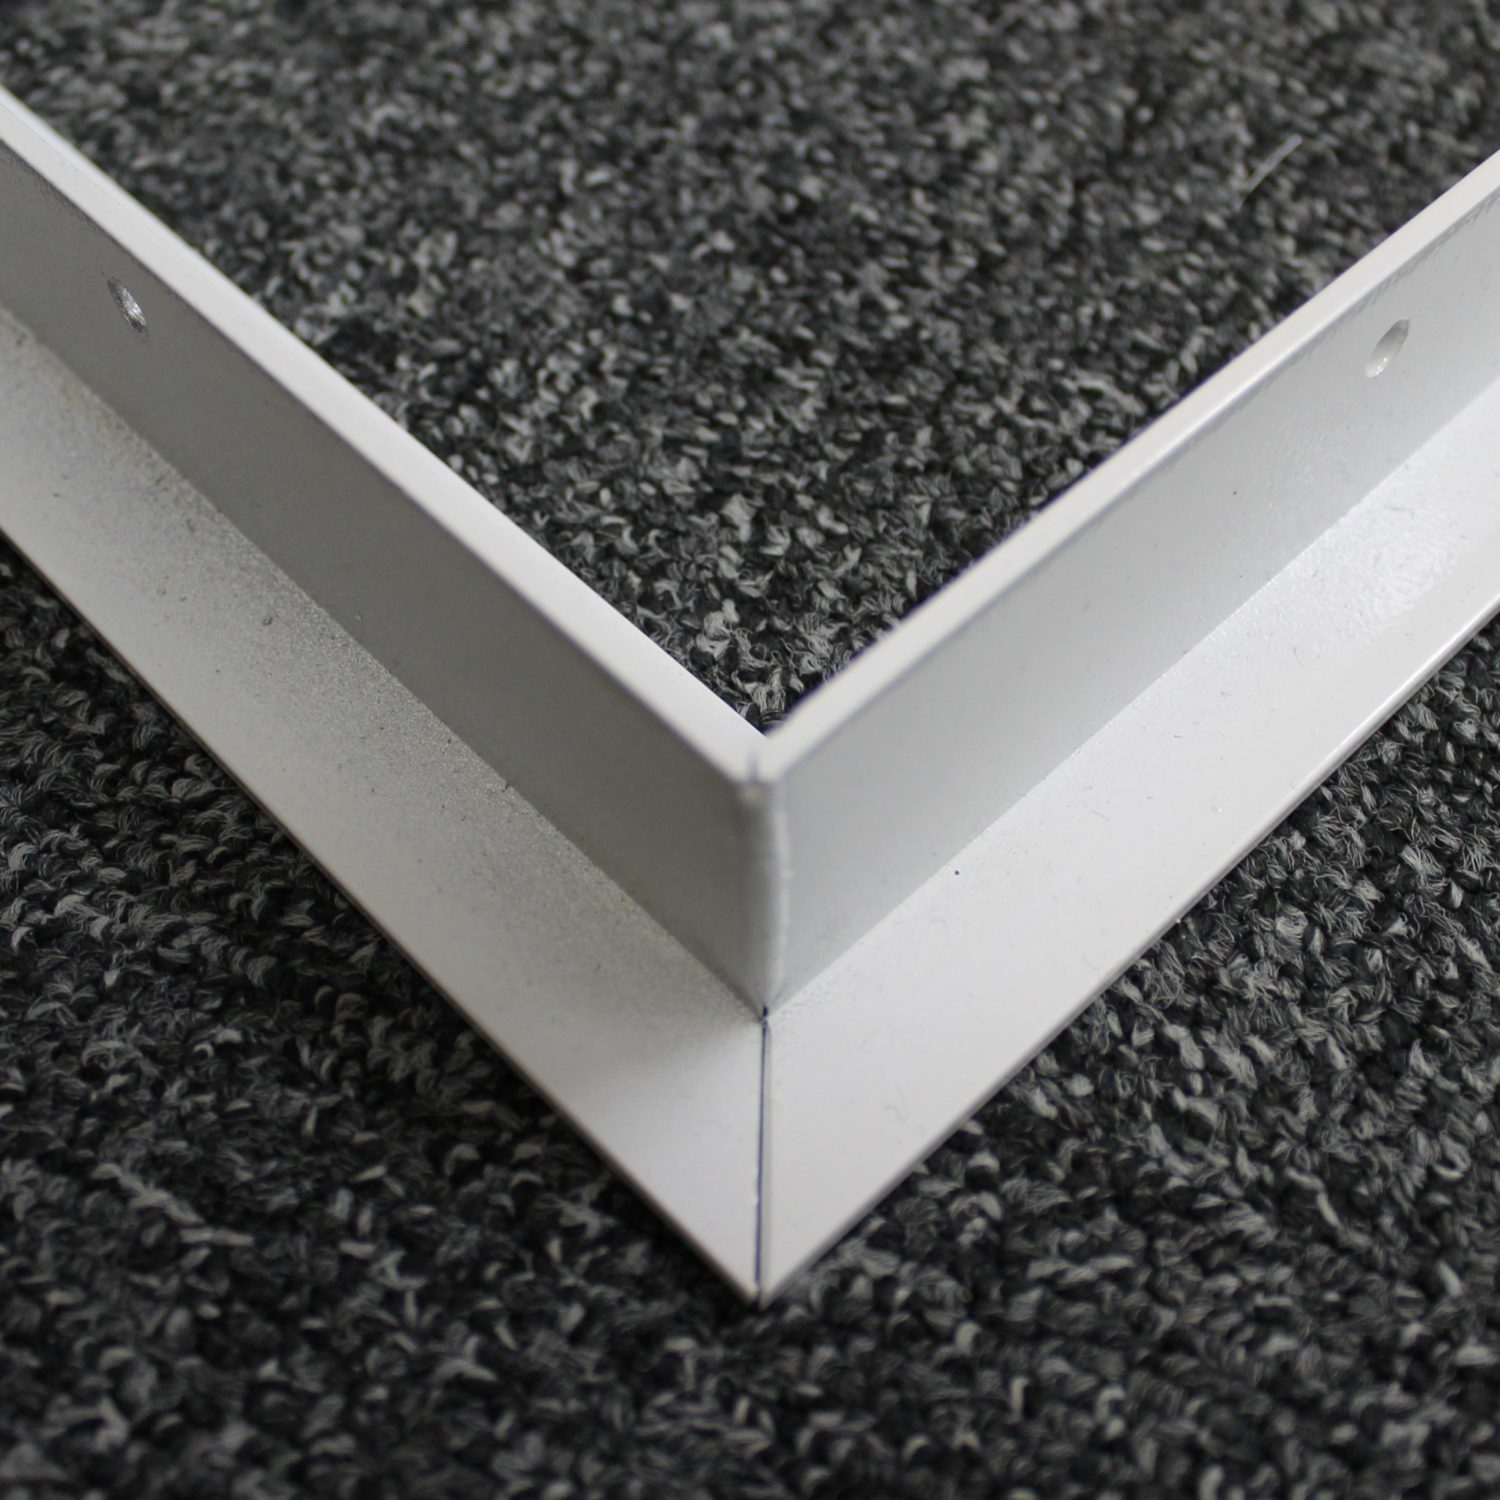 Bespoke Led Panel Surface Mounting Kit White 595x595mm